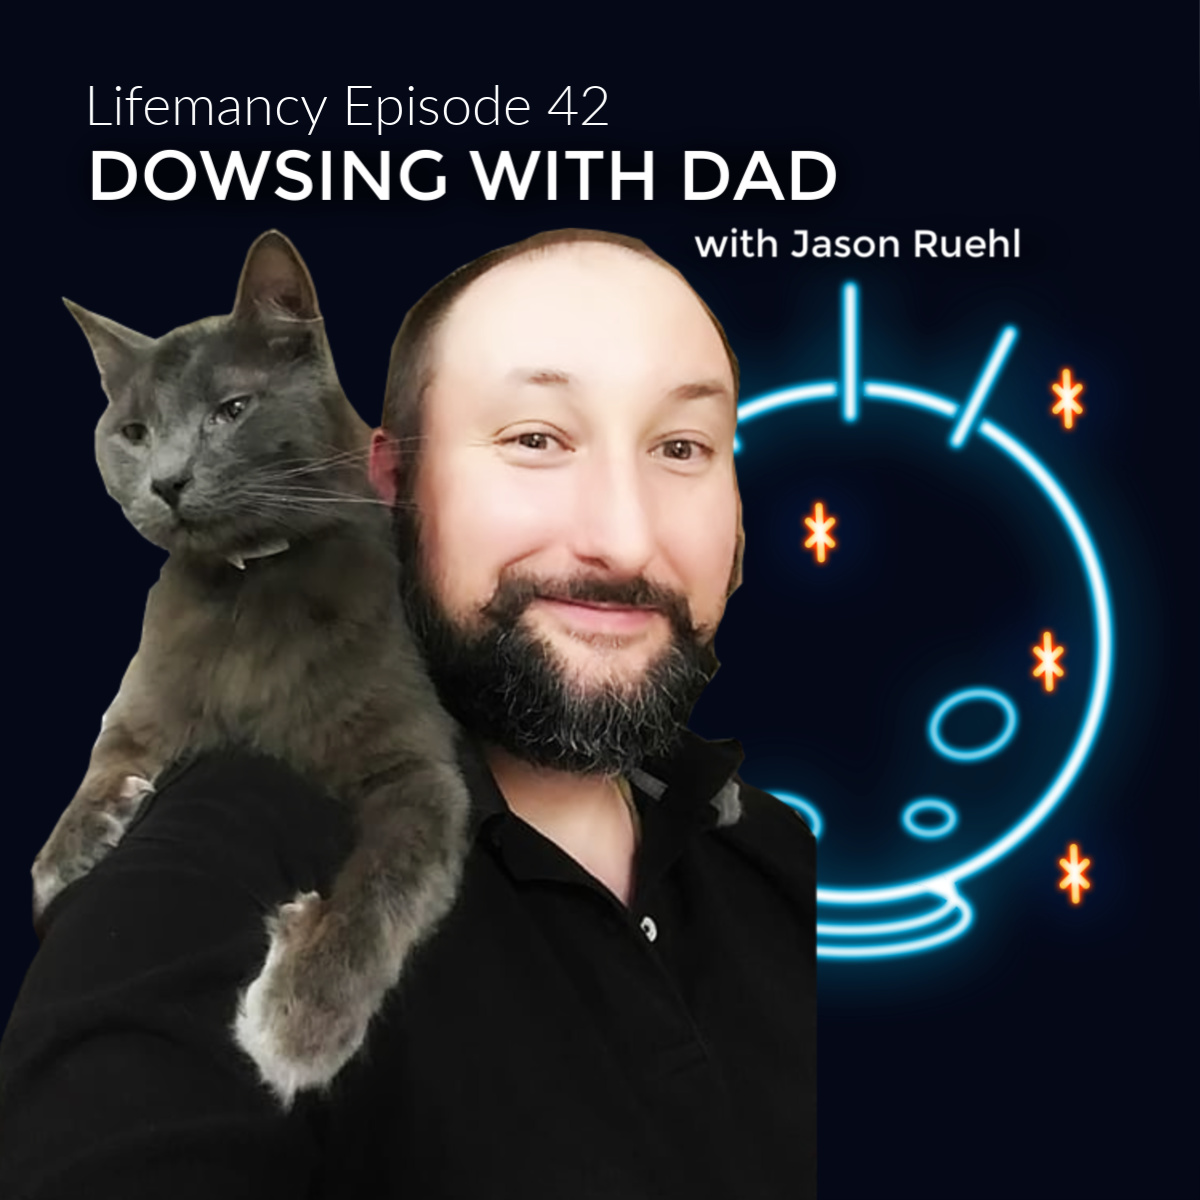 Dowsing with Dad with Jason Ruehl